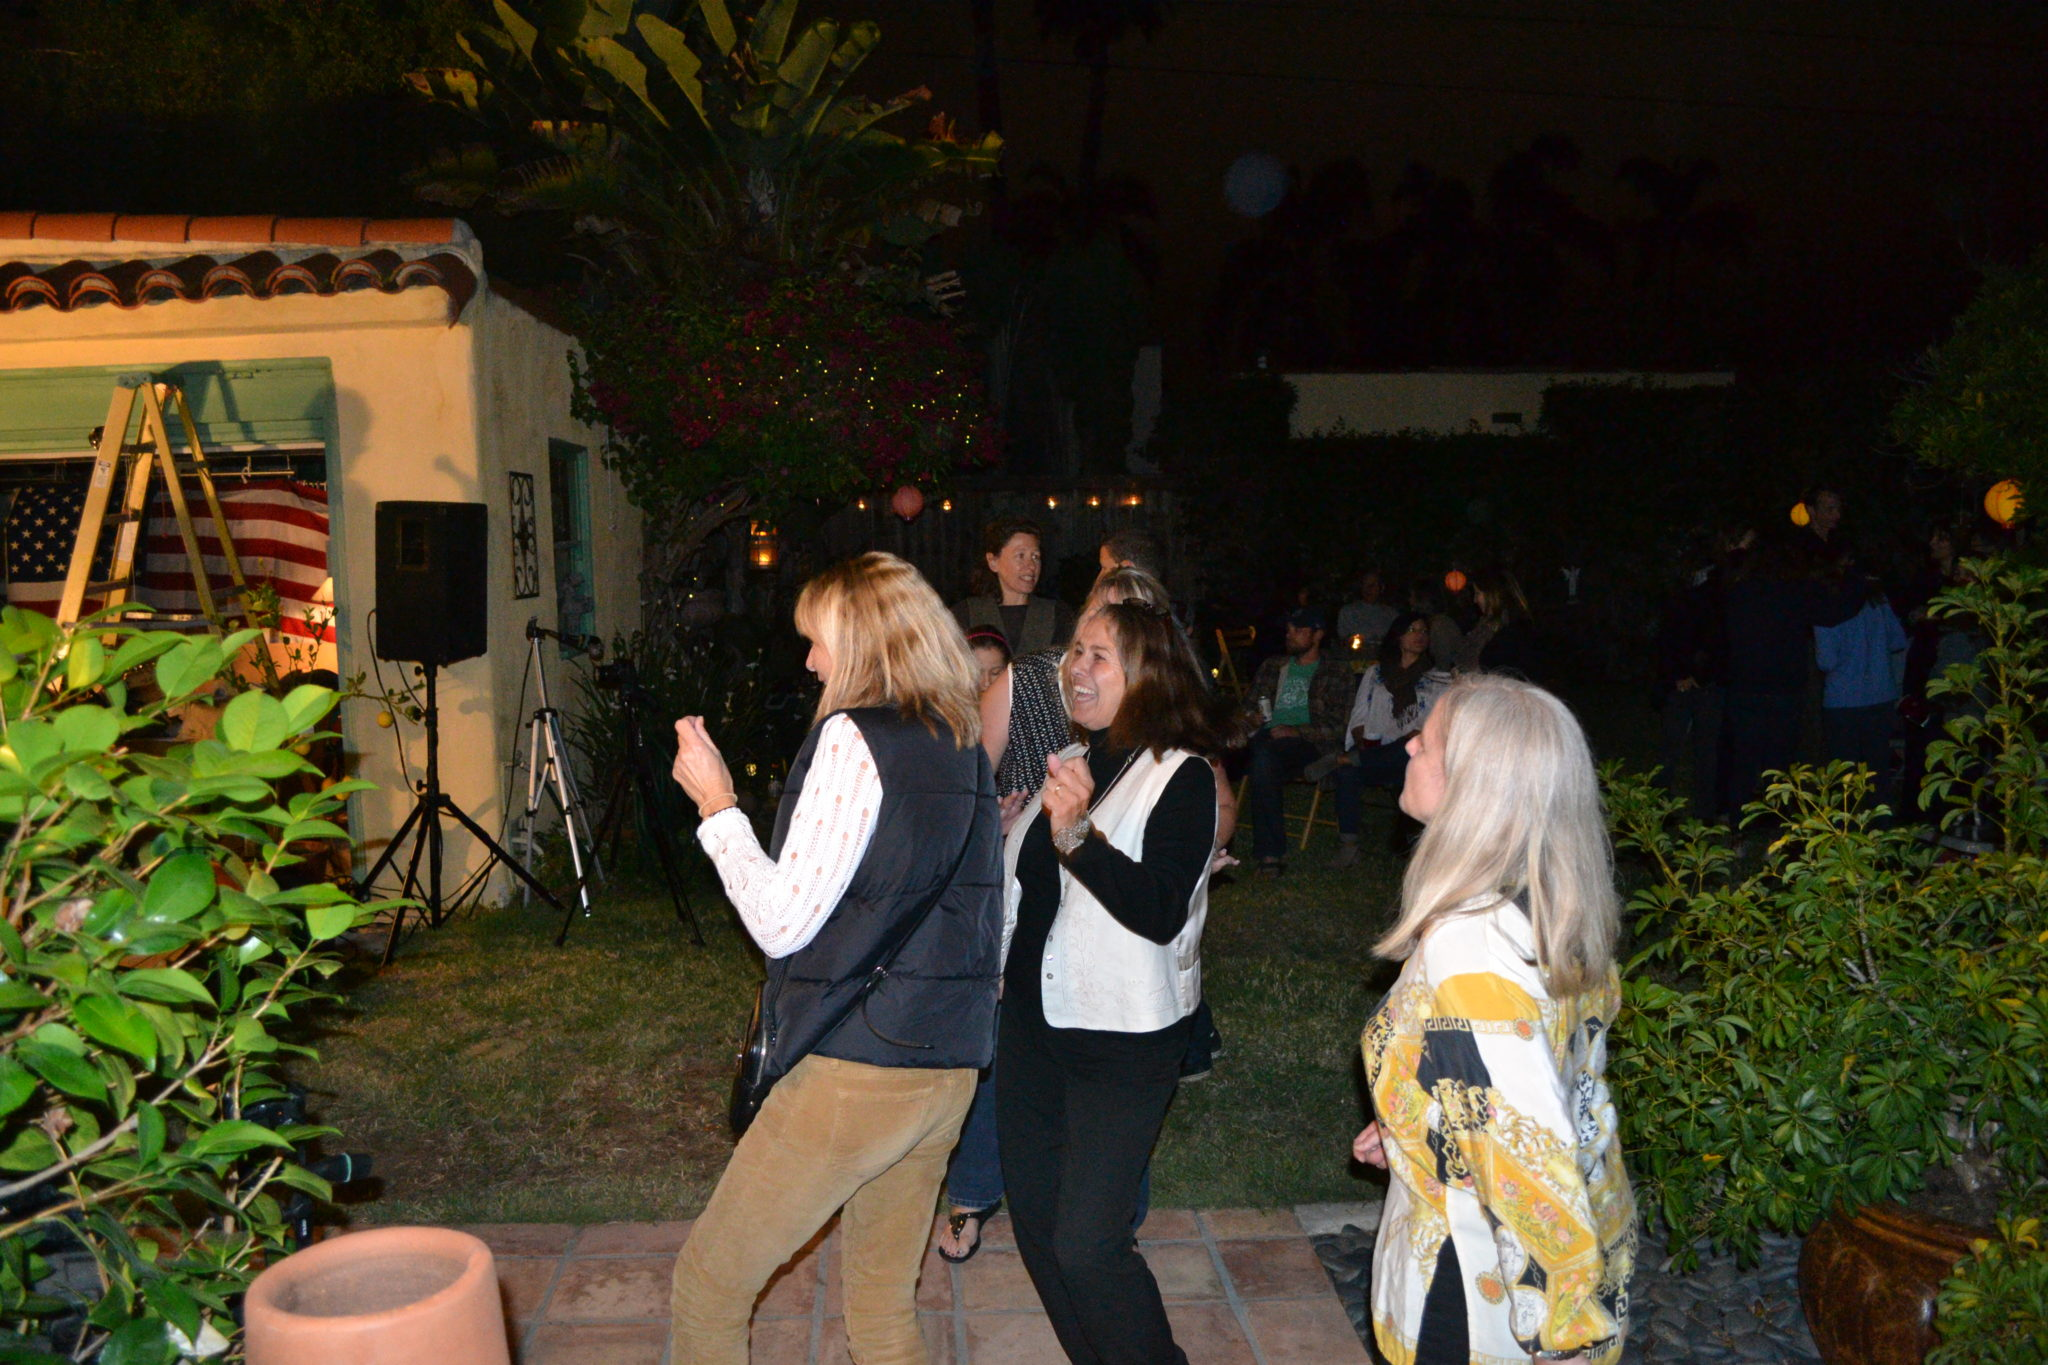 Innocent Bystander fans dancing in Kensington, San Diego